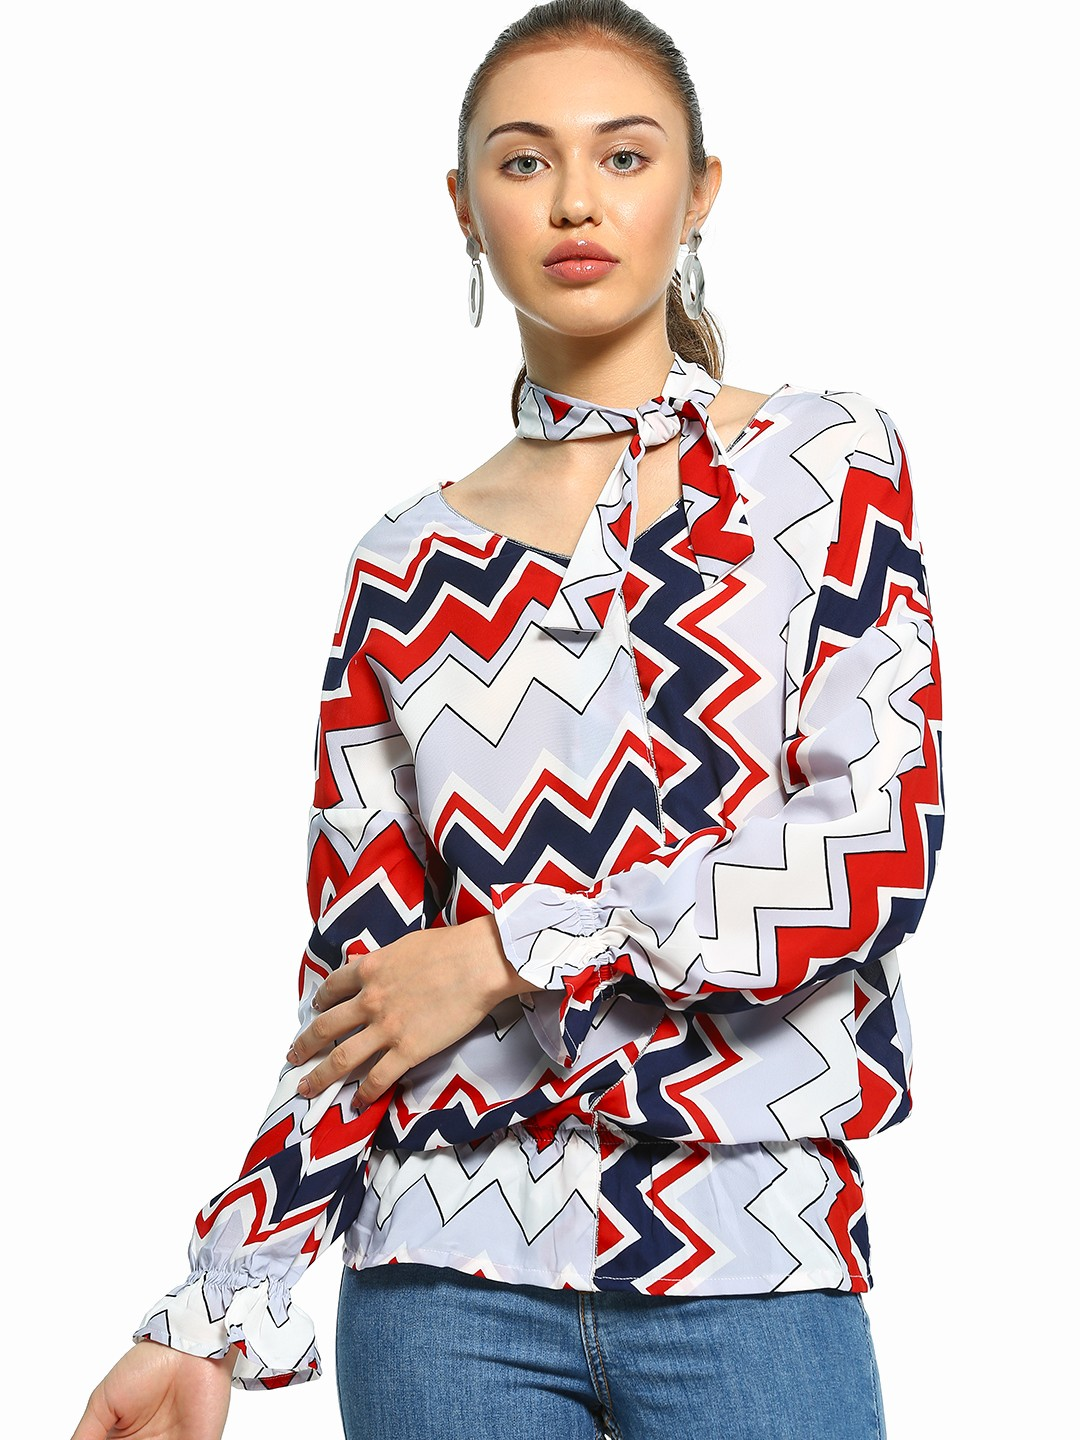 UMM Multi Chevron Print Tie Neck Blouse 1